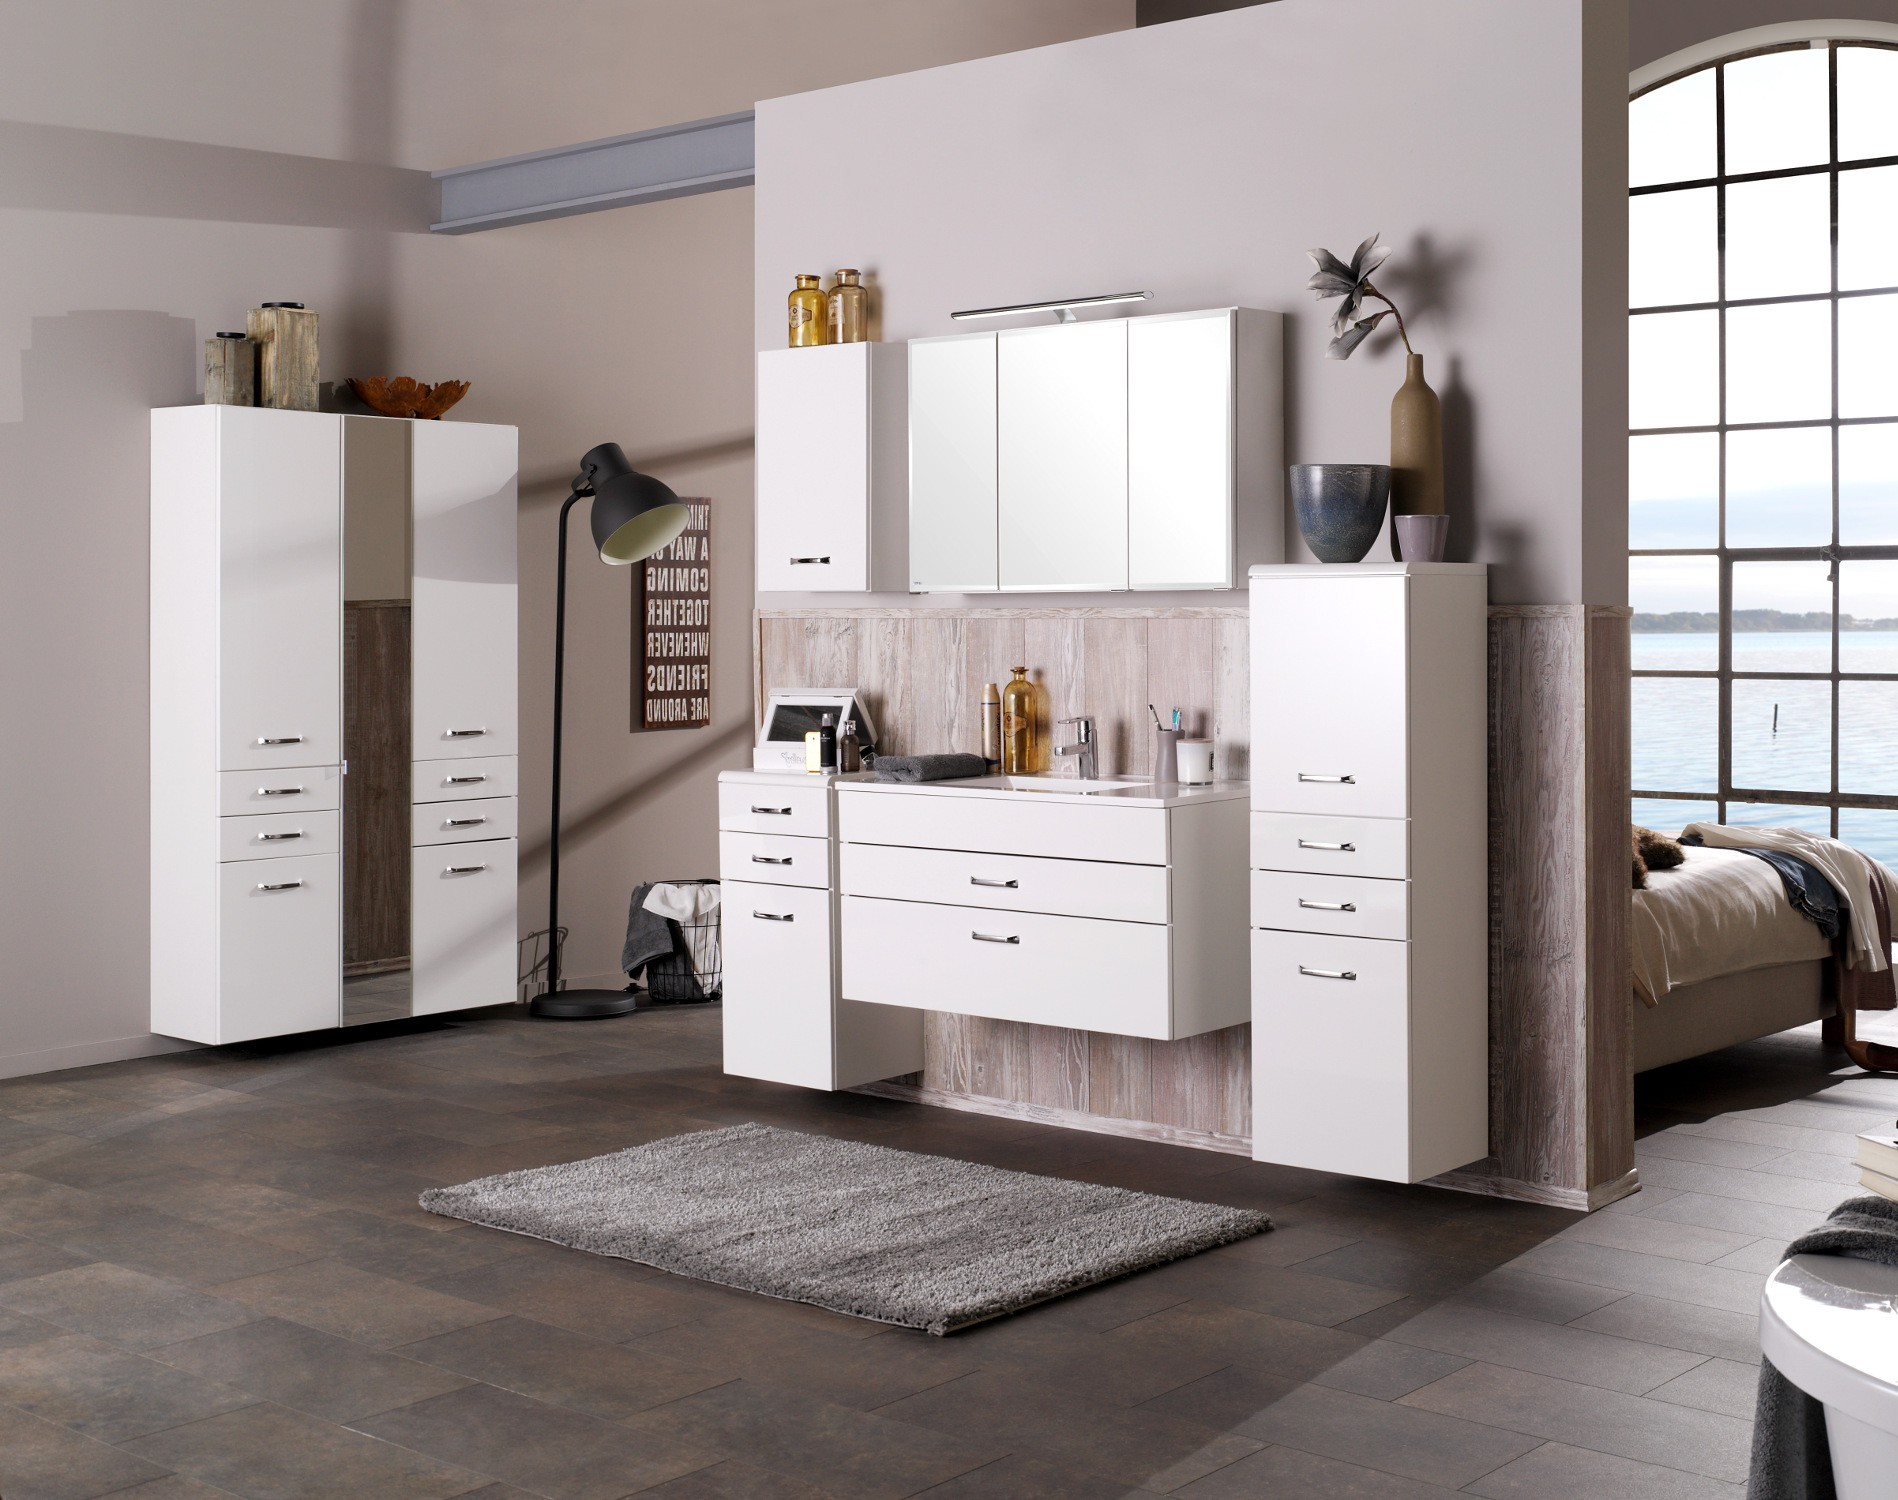 badm bel set fontana mit waschtisch 9 teilig 285 cm breit hochglanz wei bad badm belsets. Black Bedroom Furniture Sets. Home Design Ideas